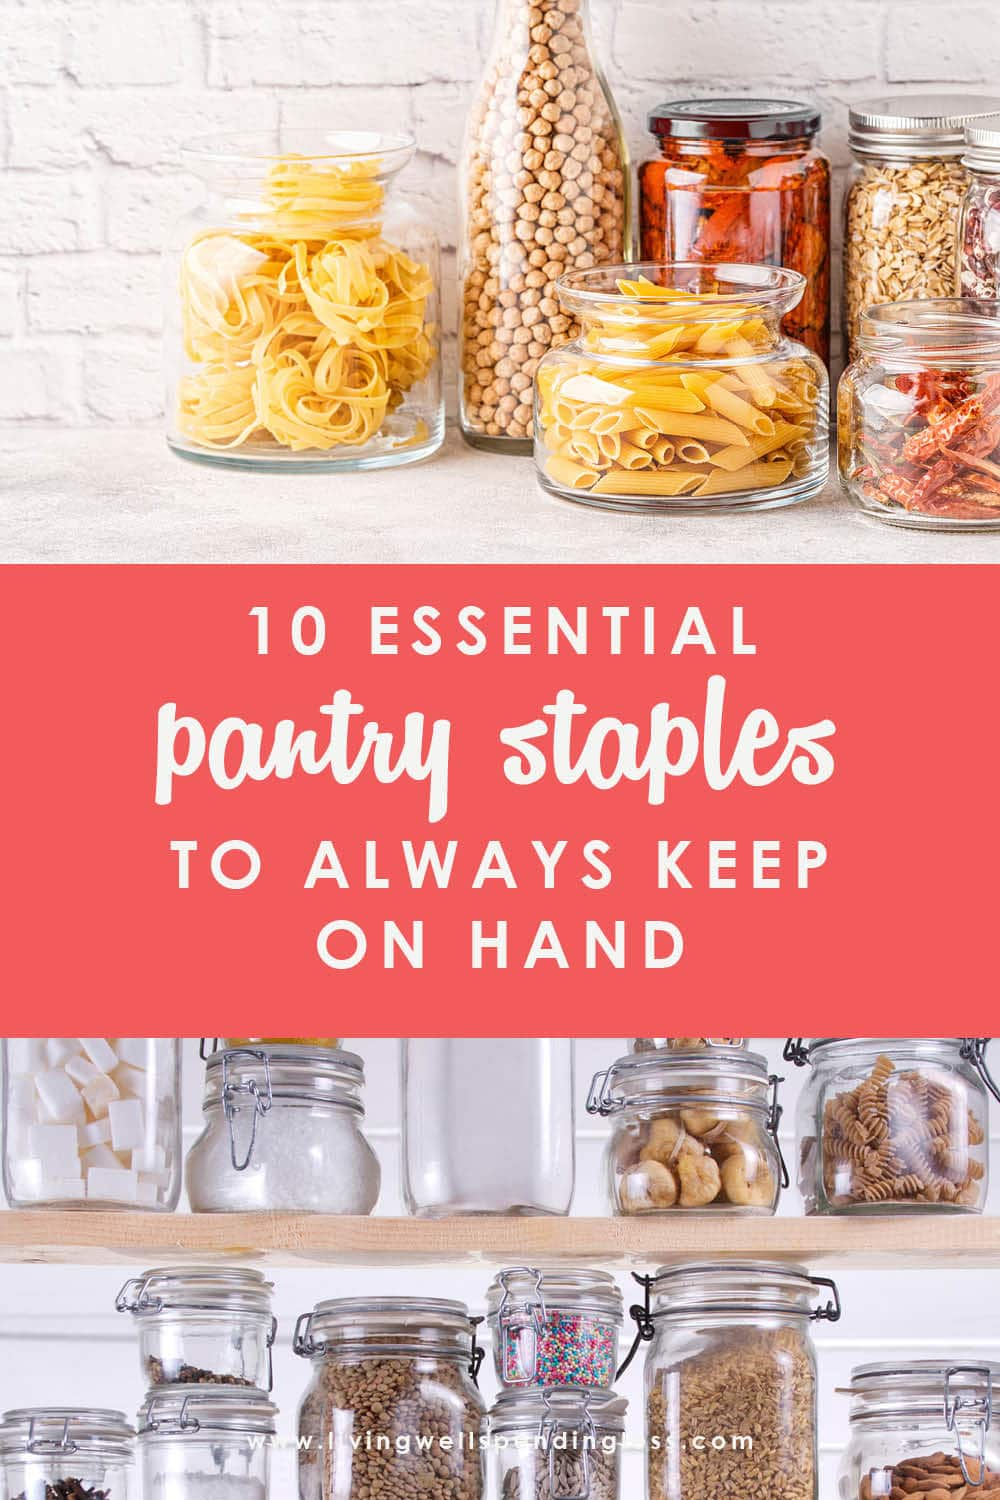 A well-stocked pantry can be a lifesaver, literally. Having additional dry food storage on hand helps you feel prepared and allows you to whip up budget-friendly meals on the fly, no pre-planning required! If you've ever wondered what you need to stock up on, you will not want to miss this helpful list of 10 pantry staples to always keep on hand!#pantrystaples #mealprep #pantrybudget